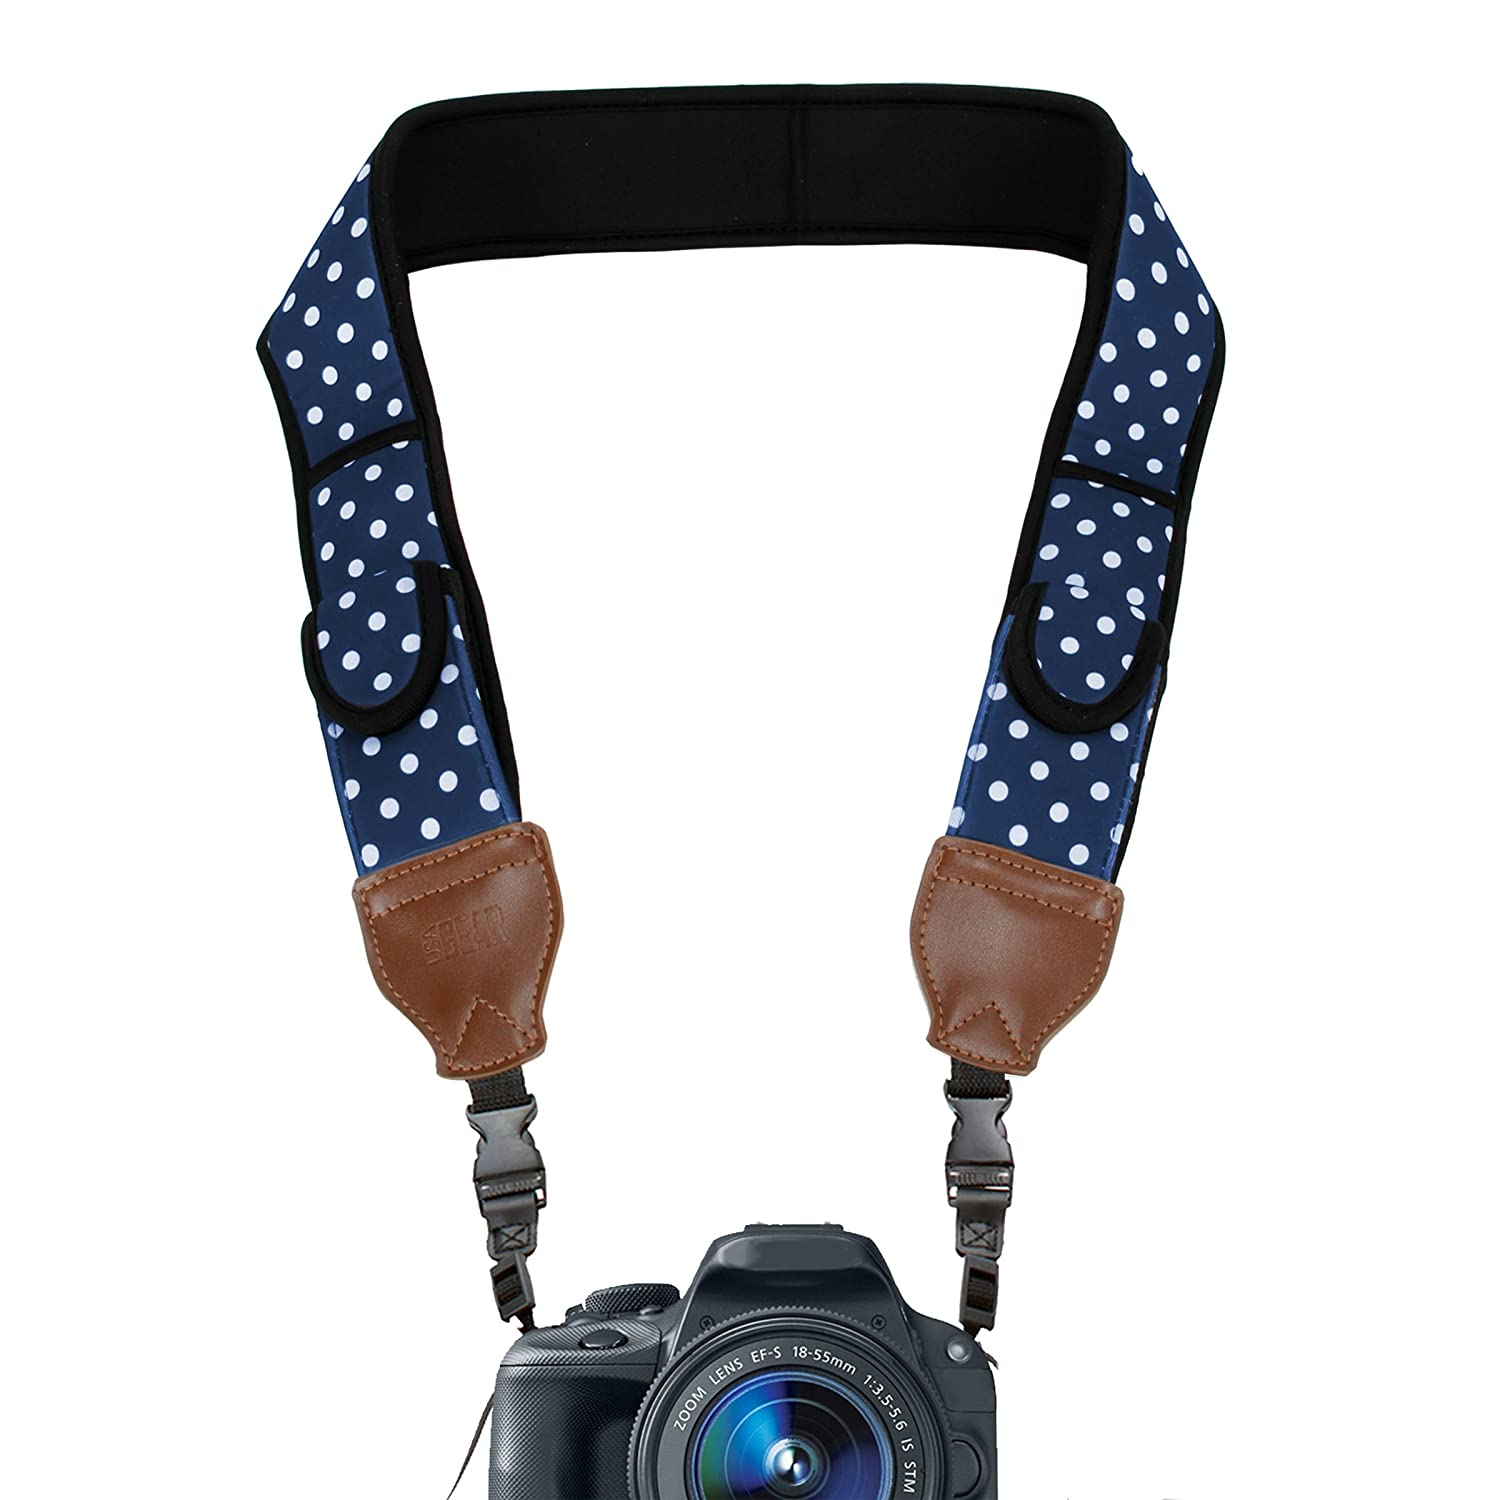 TrueSHOT Camera Strap with Blue Polka Dot Neoprene Pattern and Accessory Storage Pockets by USA Gear - Works With Canon , Fujifilm , Nikon , Sony and More DSLR , Mirrorless , Instant Cameras